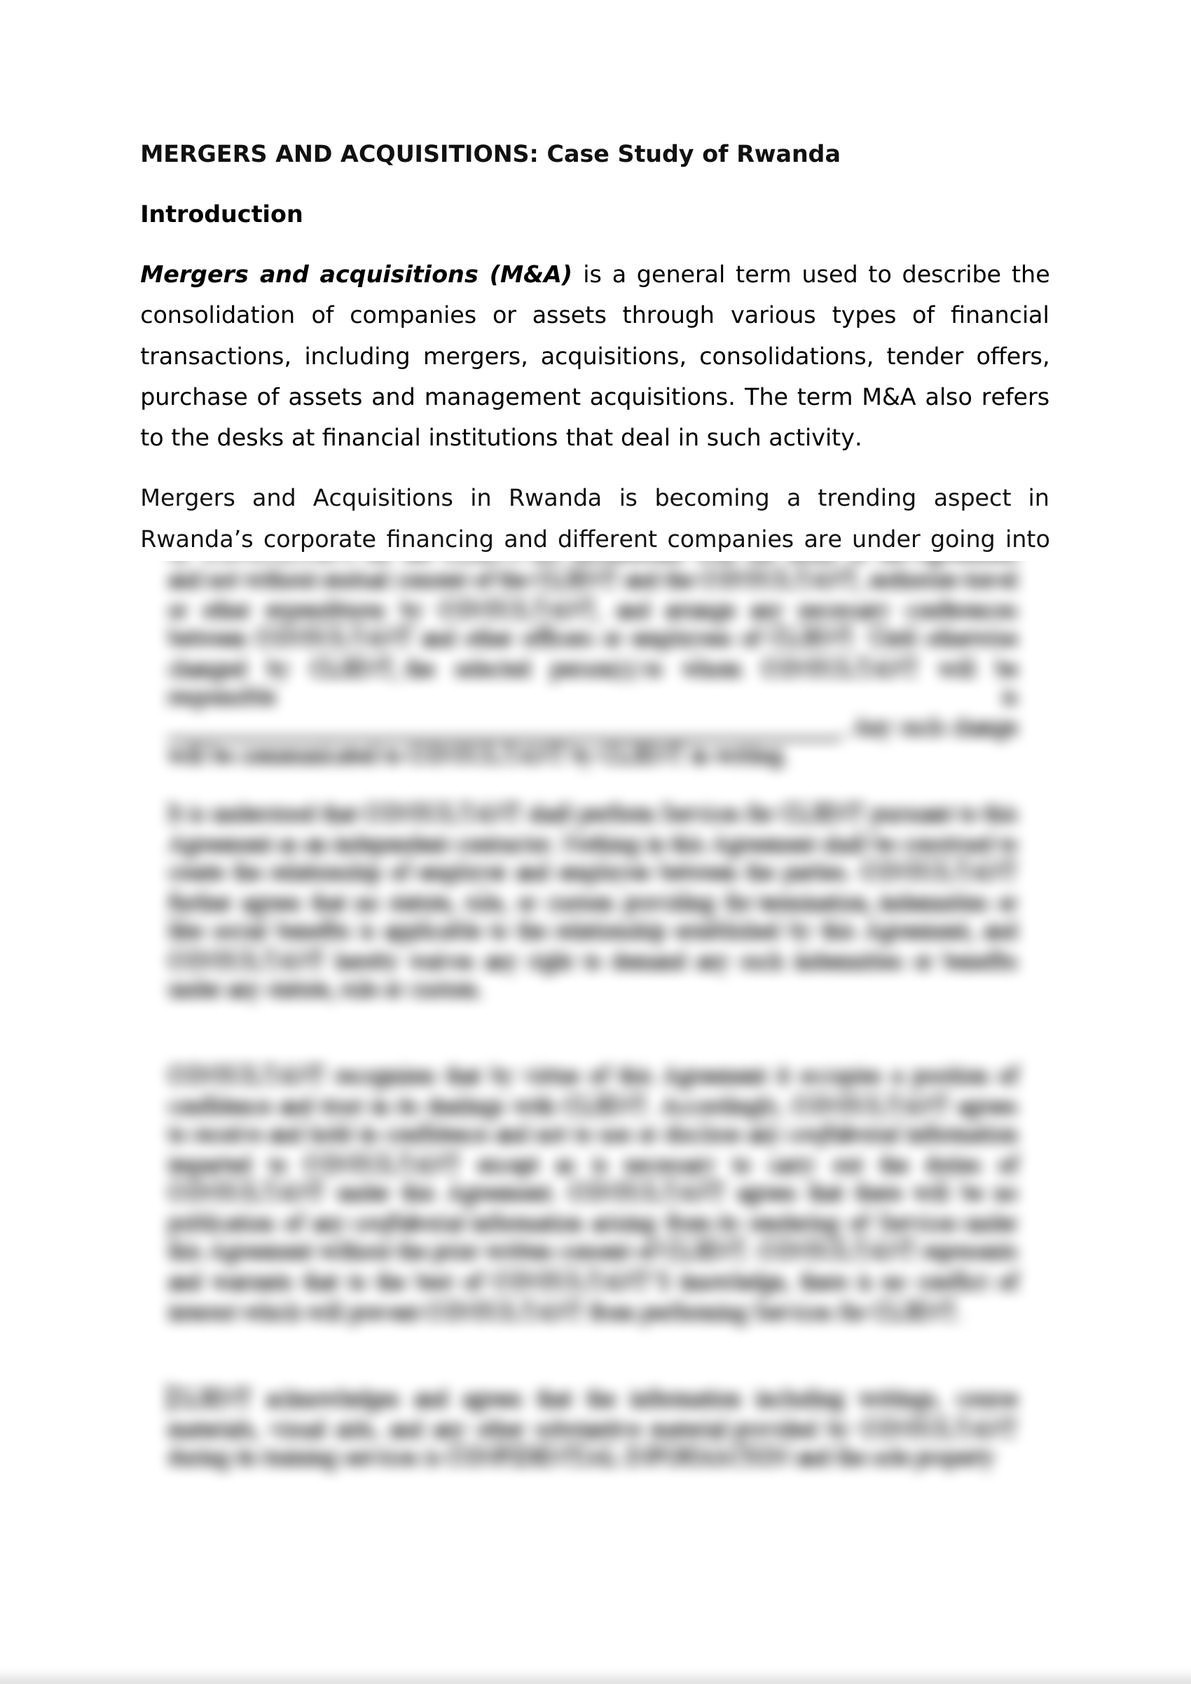 MERGERS AND ACQUISITIONS: Case Study of Rwanda -1